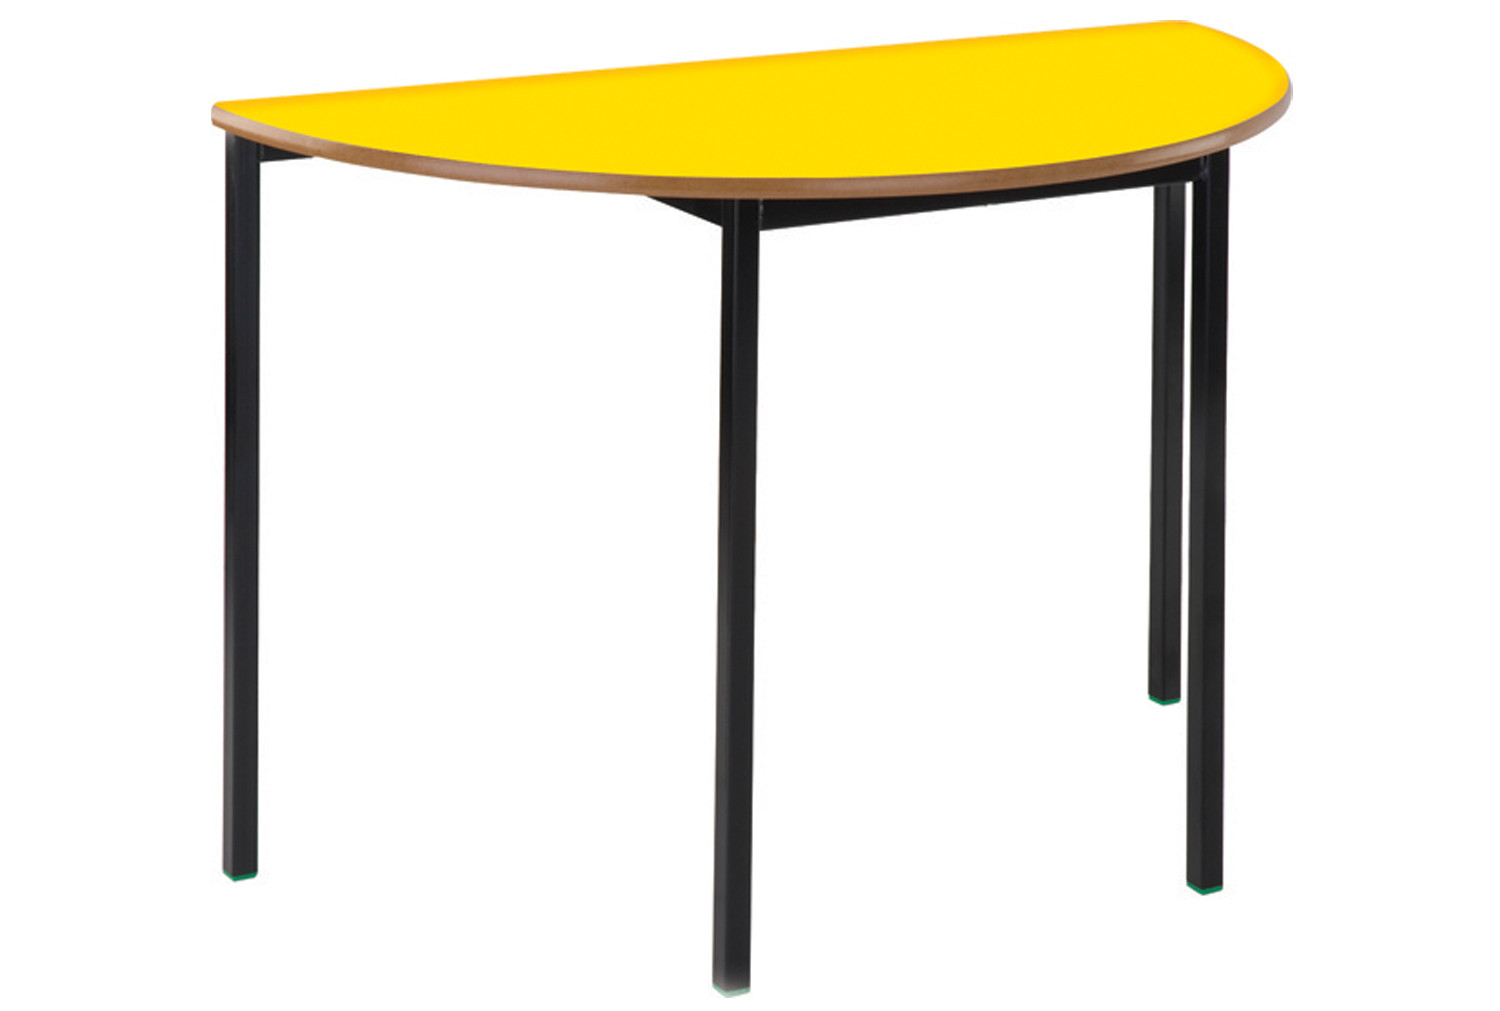 Semi-Circular Fully Welded Classroom Tables 3-4 Years